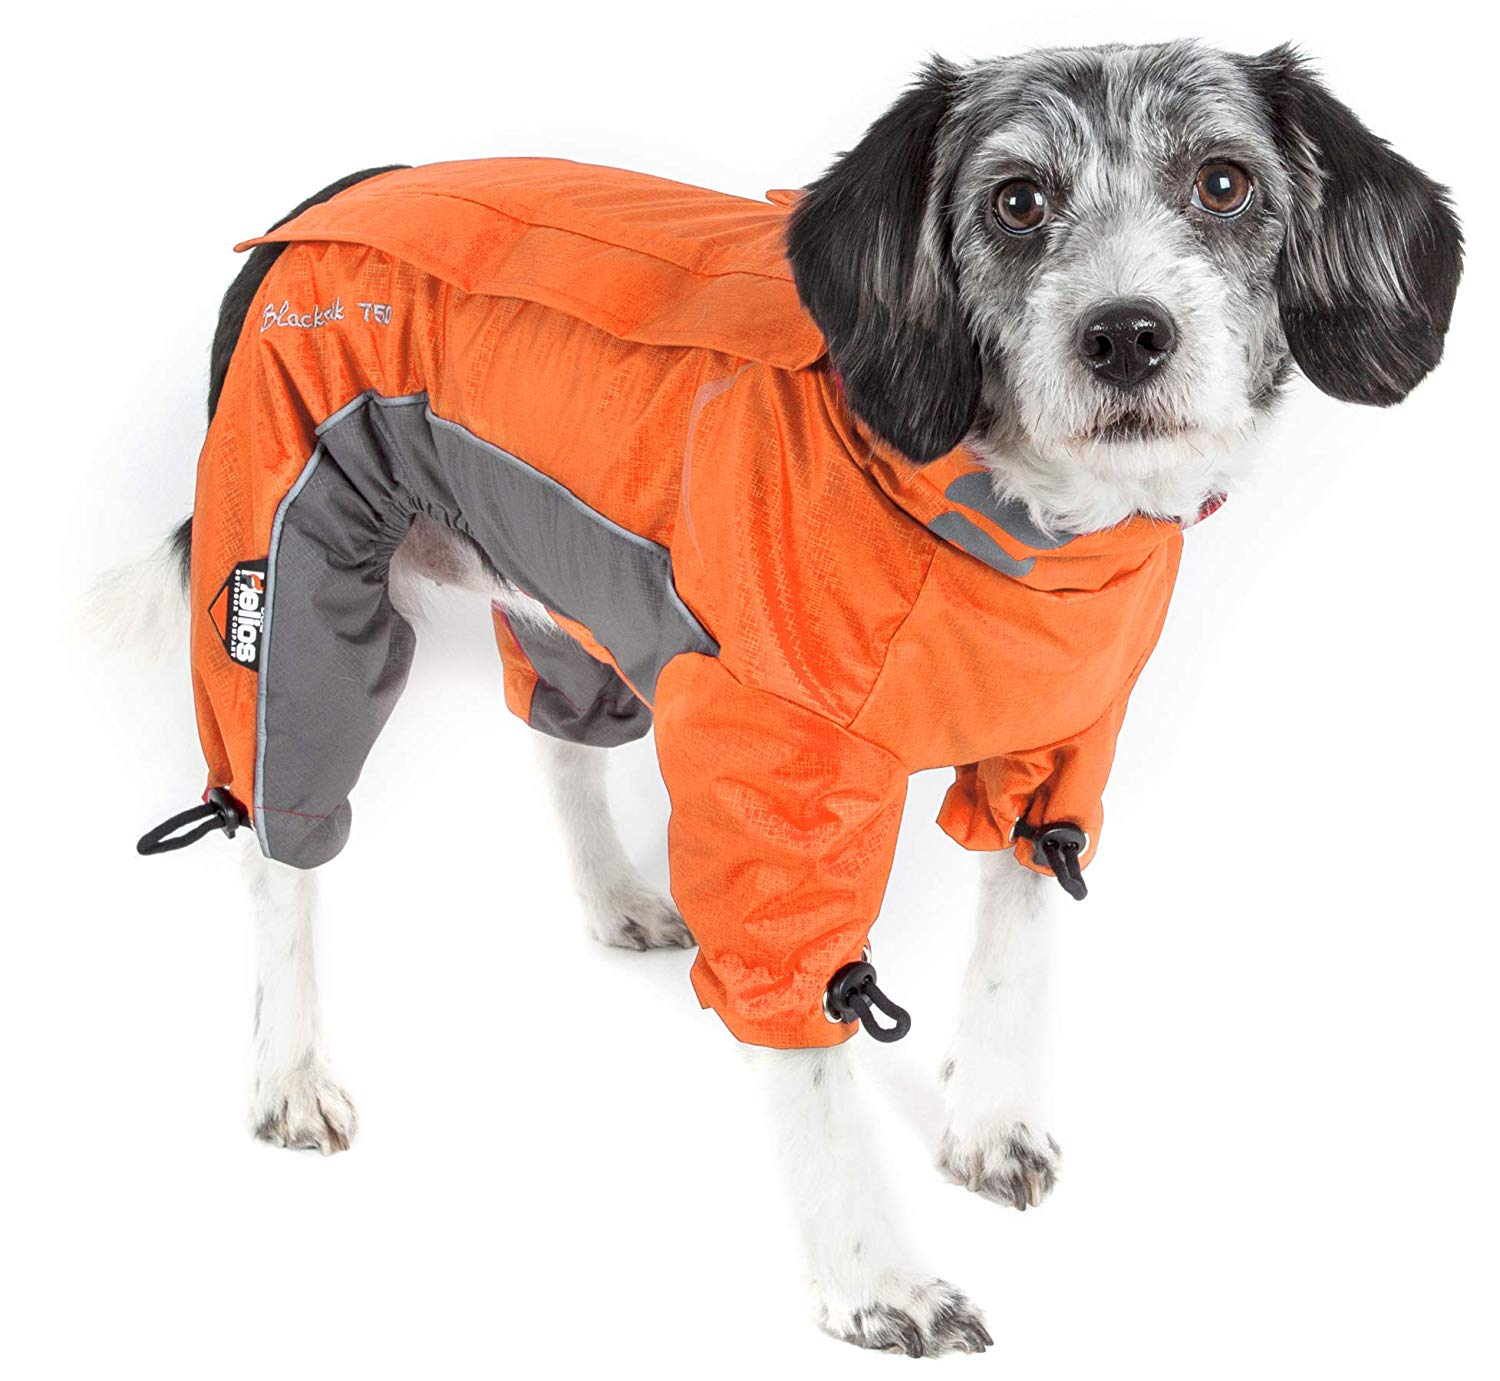 Winter Coats for Dogs: Dog Parka